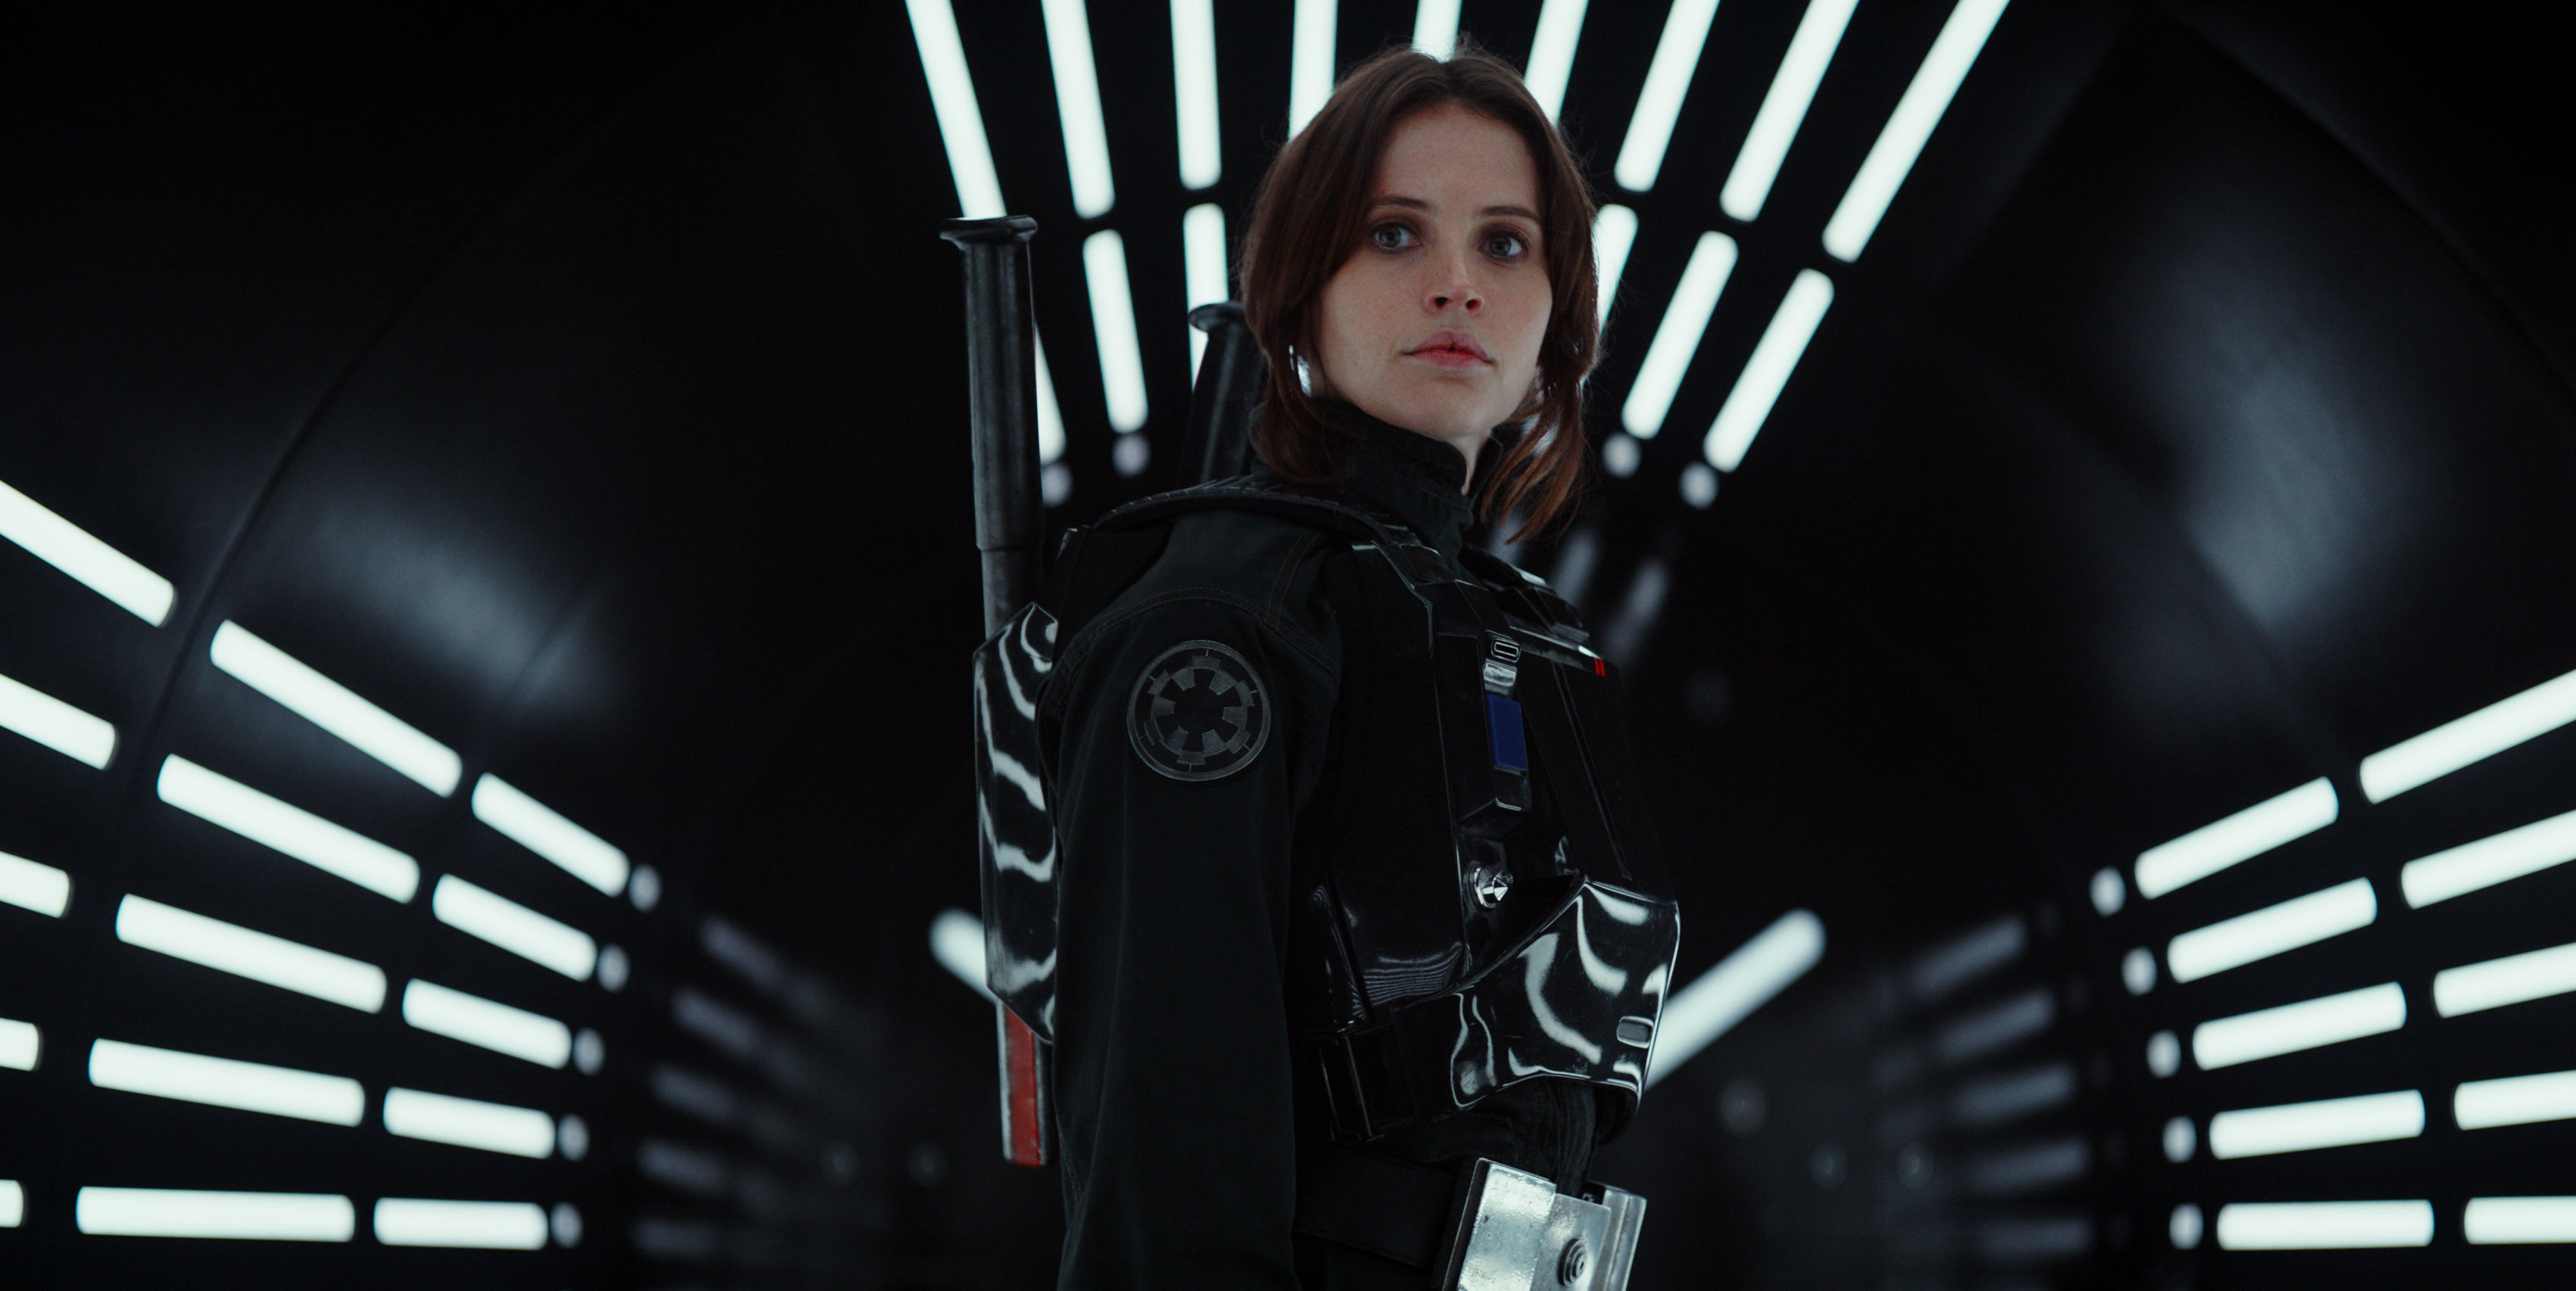 WATCH: 'Rogue One' Gets its First TV Spot